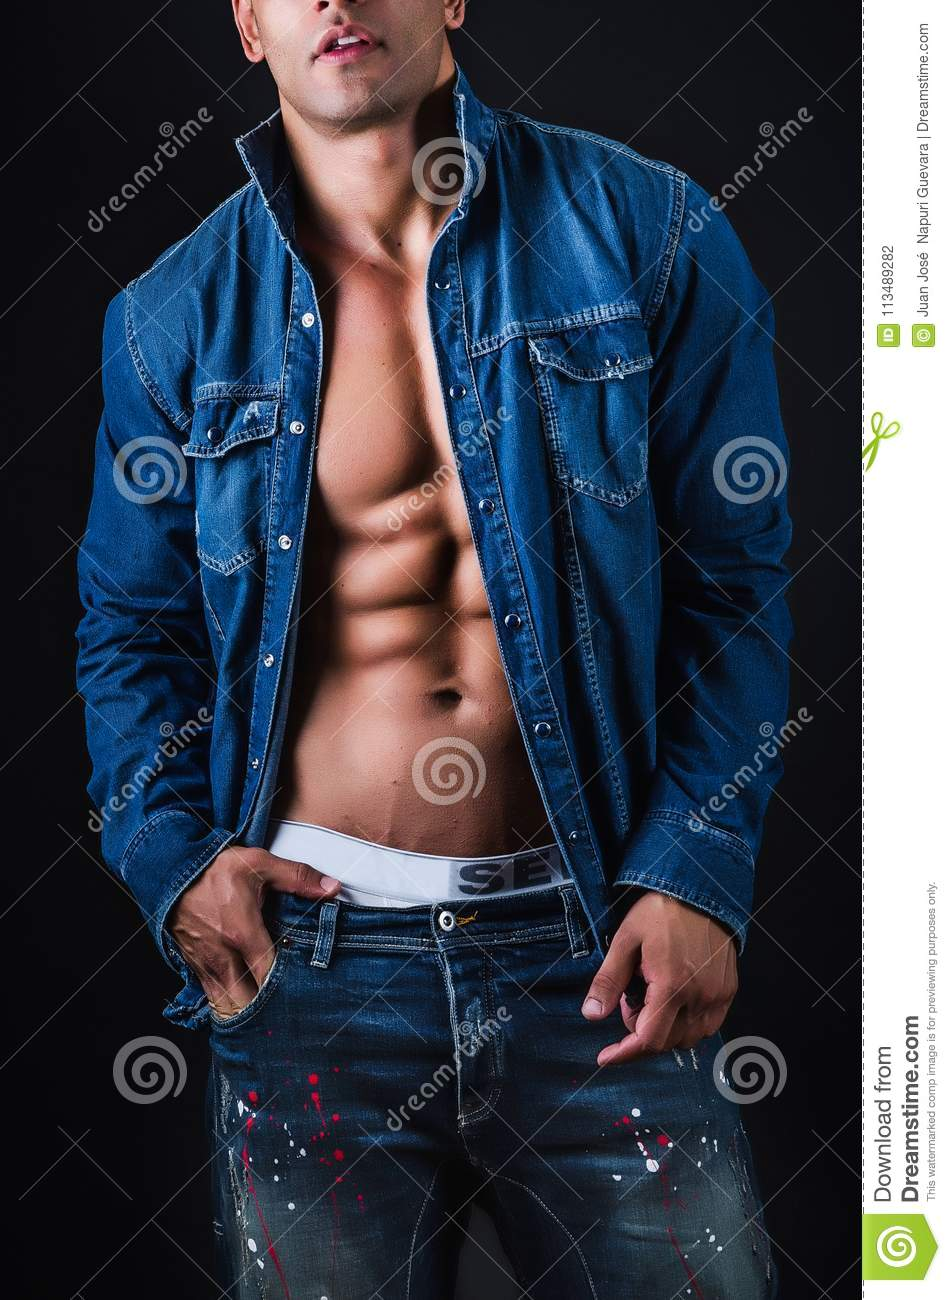 Muscular man with jacket